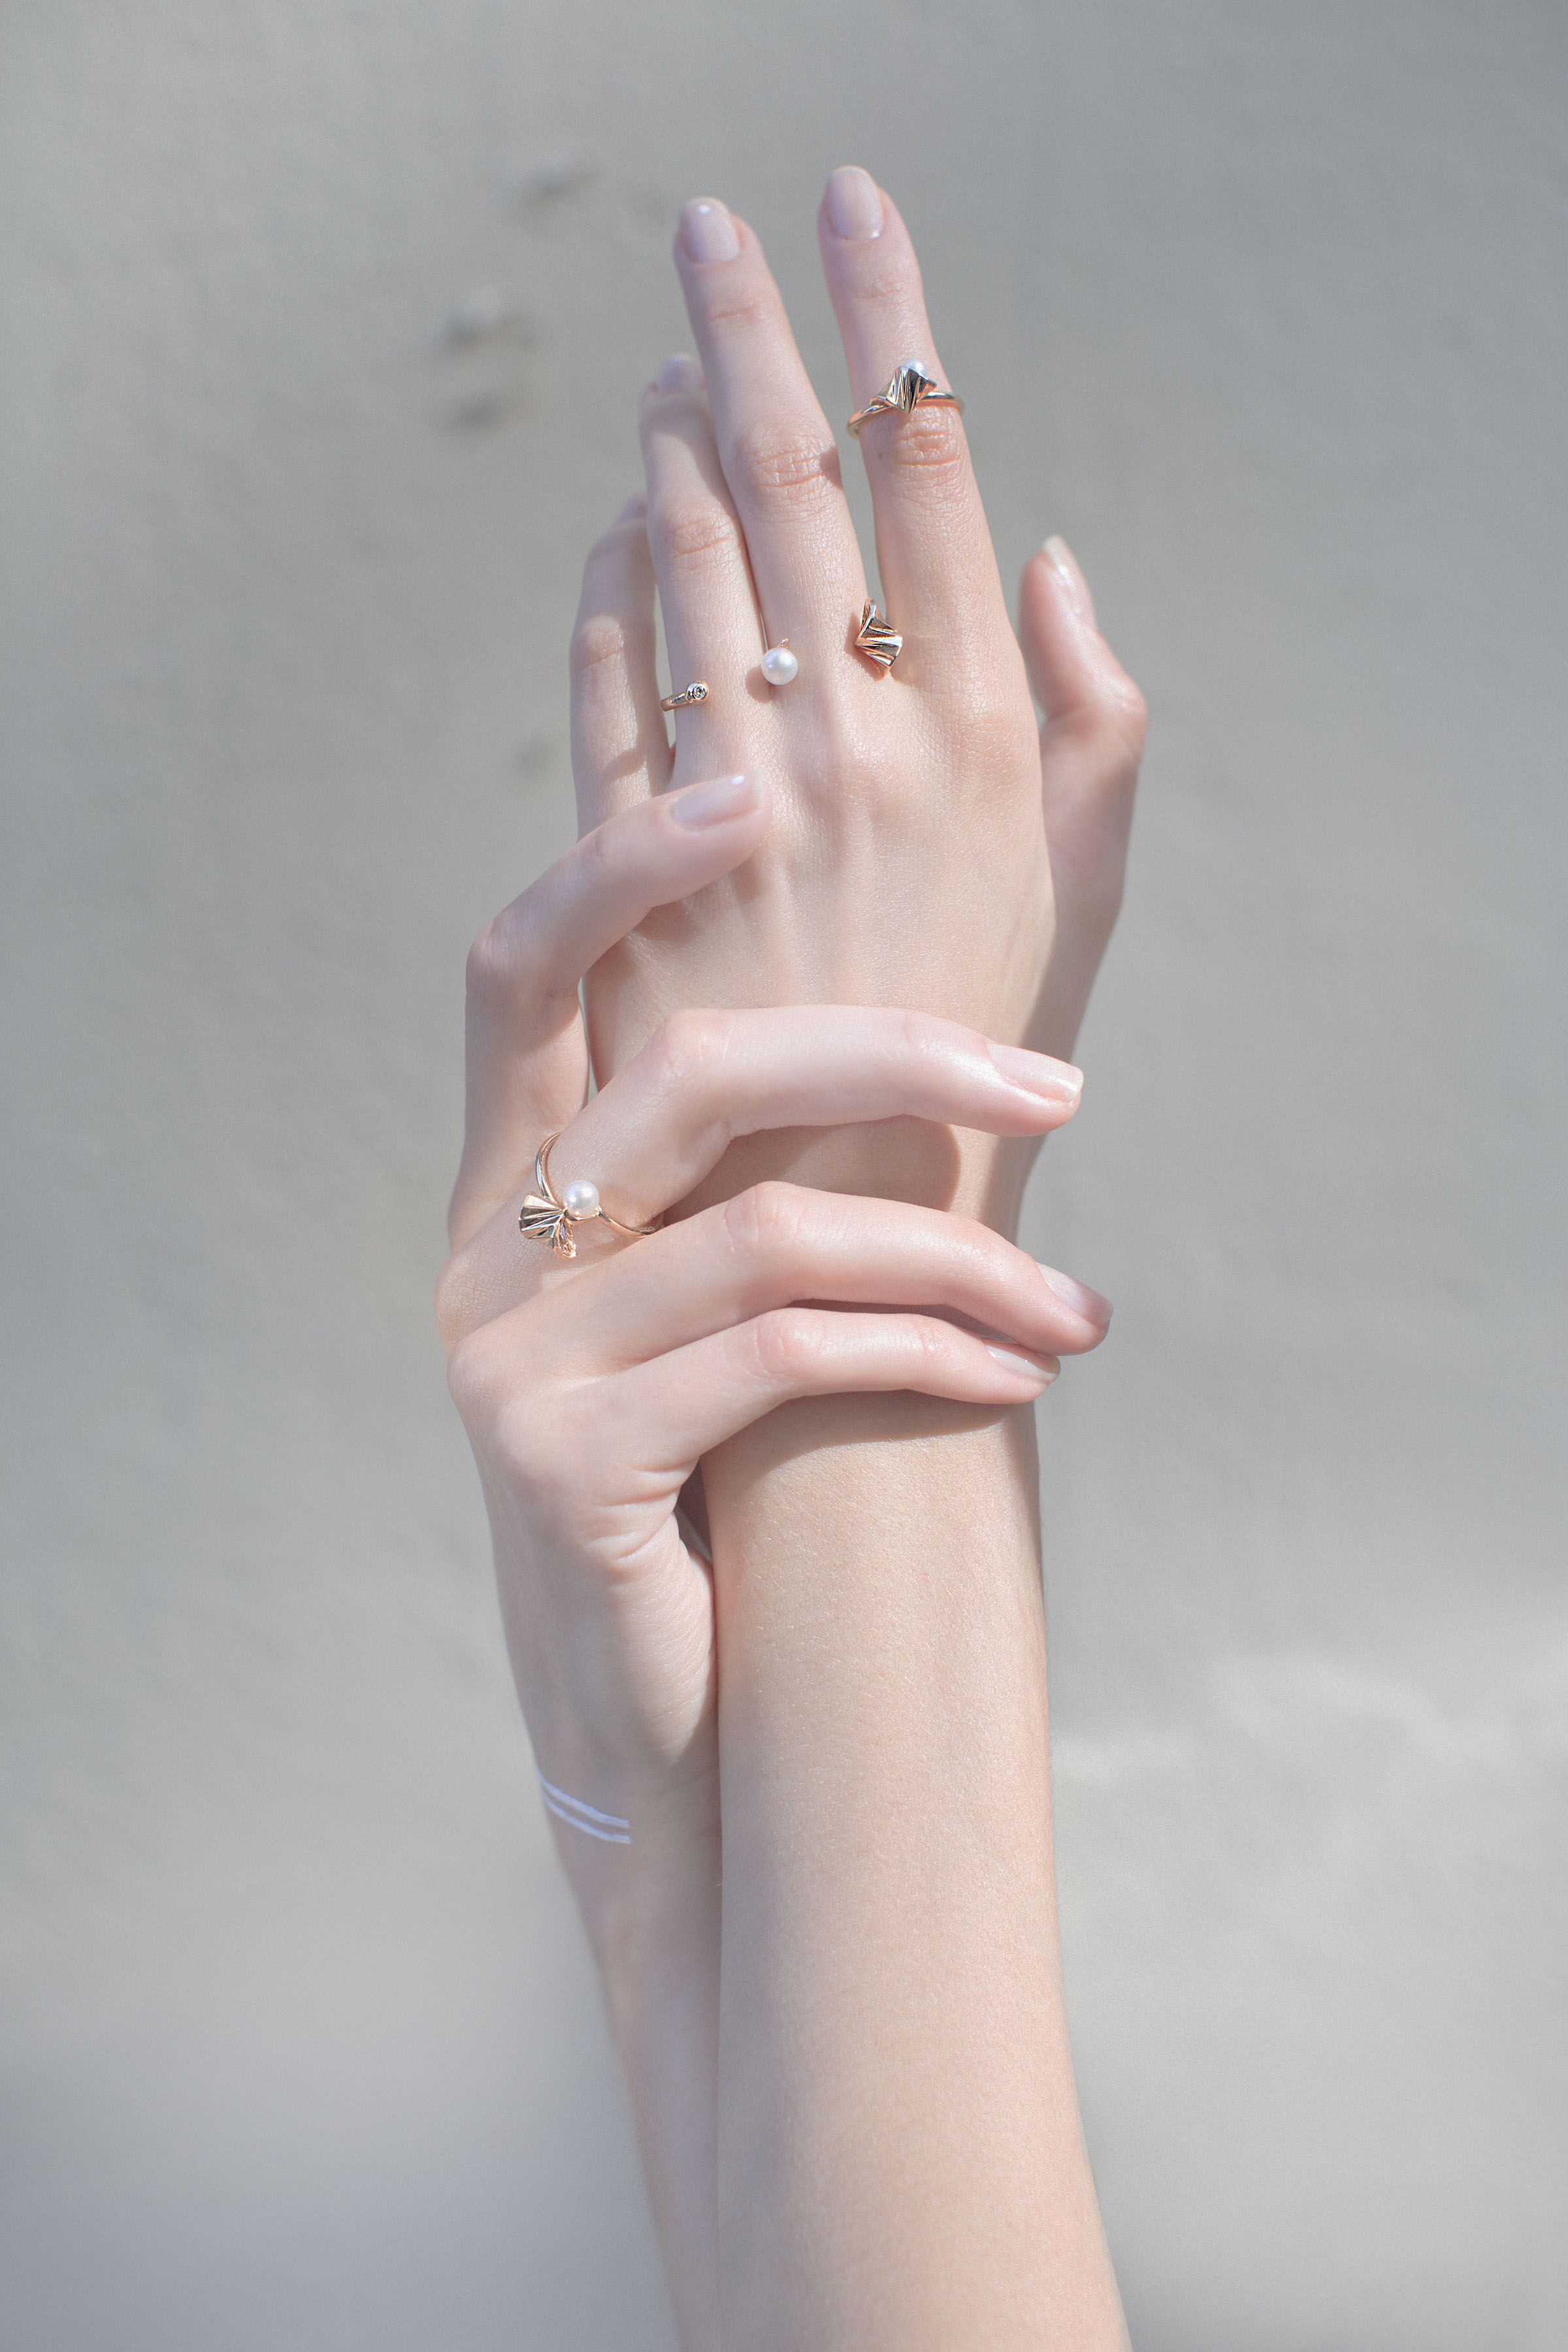 Onda Open Ring In 2020 Hand Photography Hand Reference Hand Pose